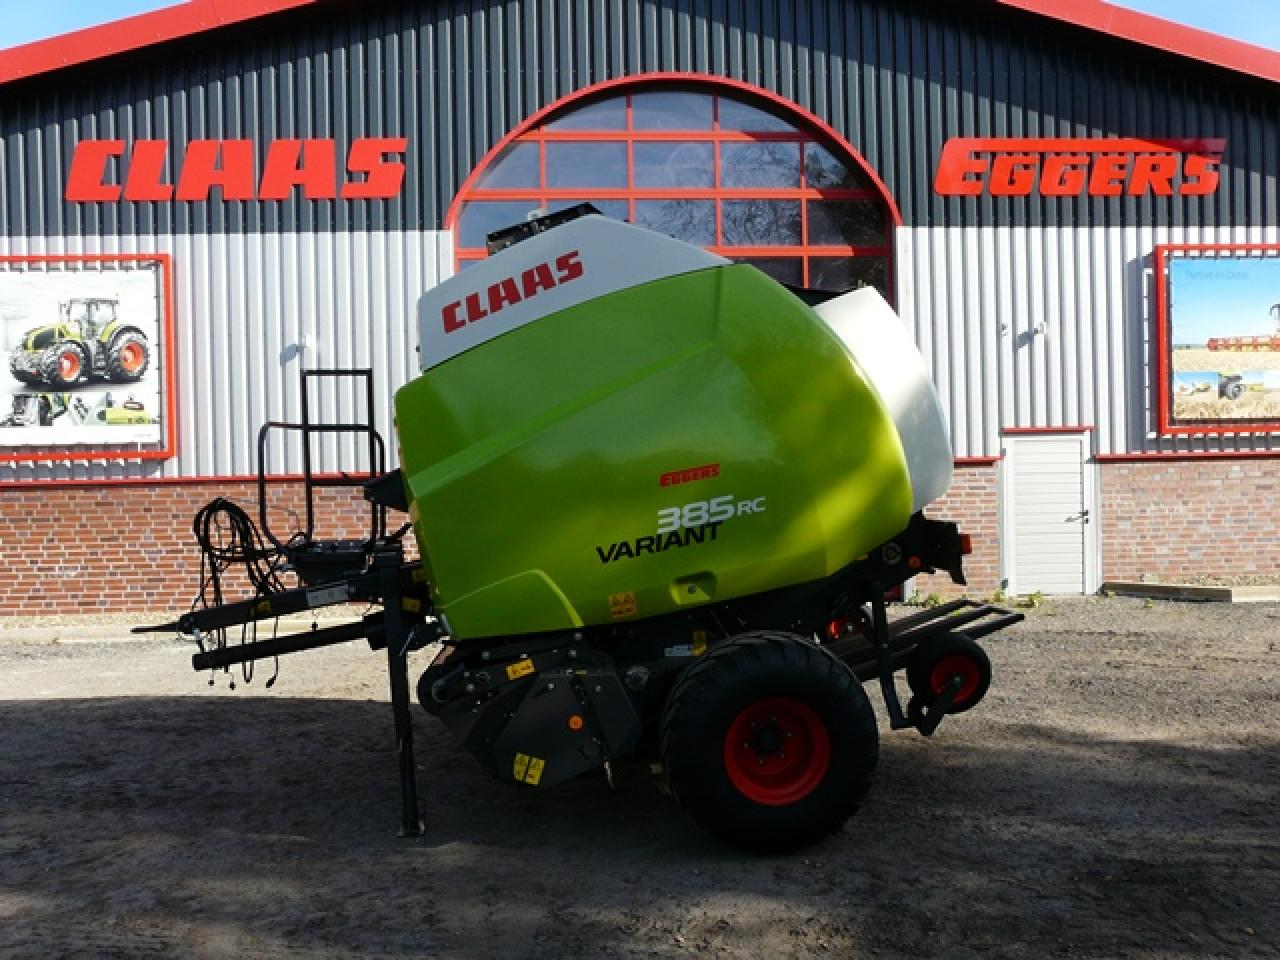 CLAAS Variant 385 RC PRO